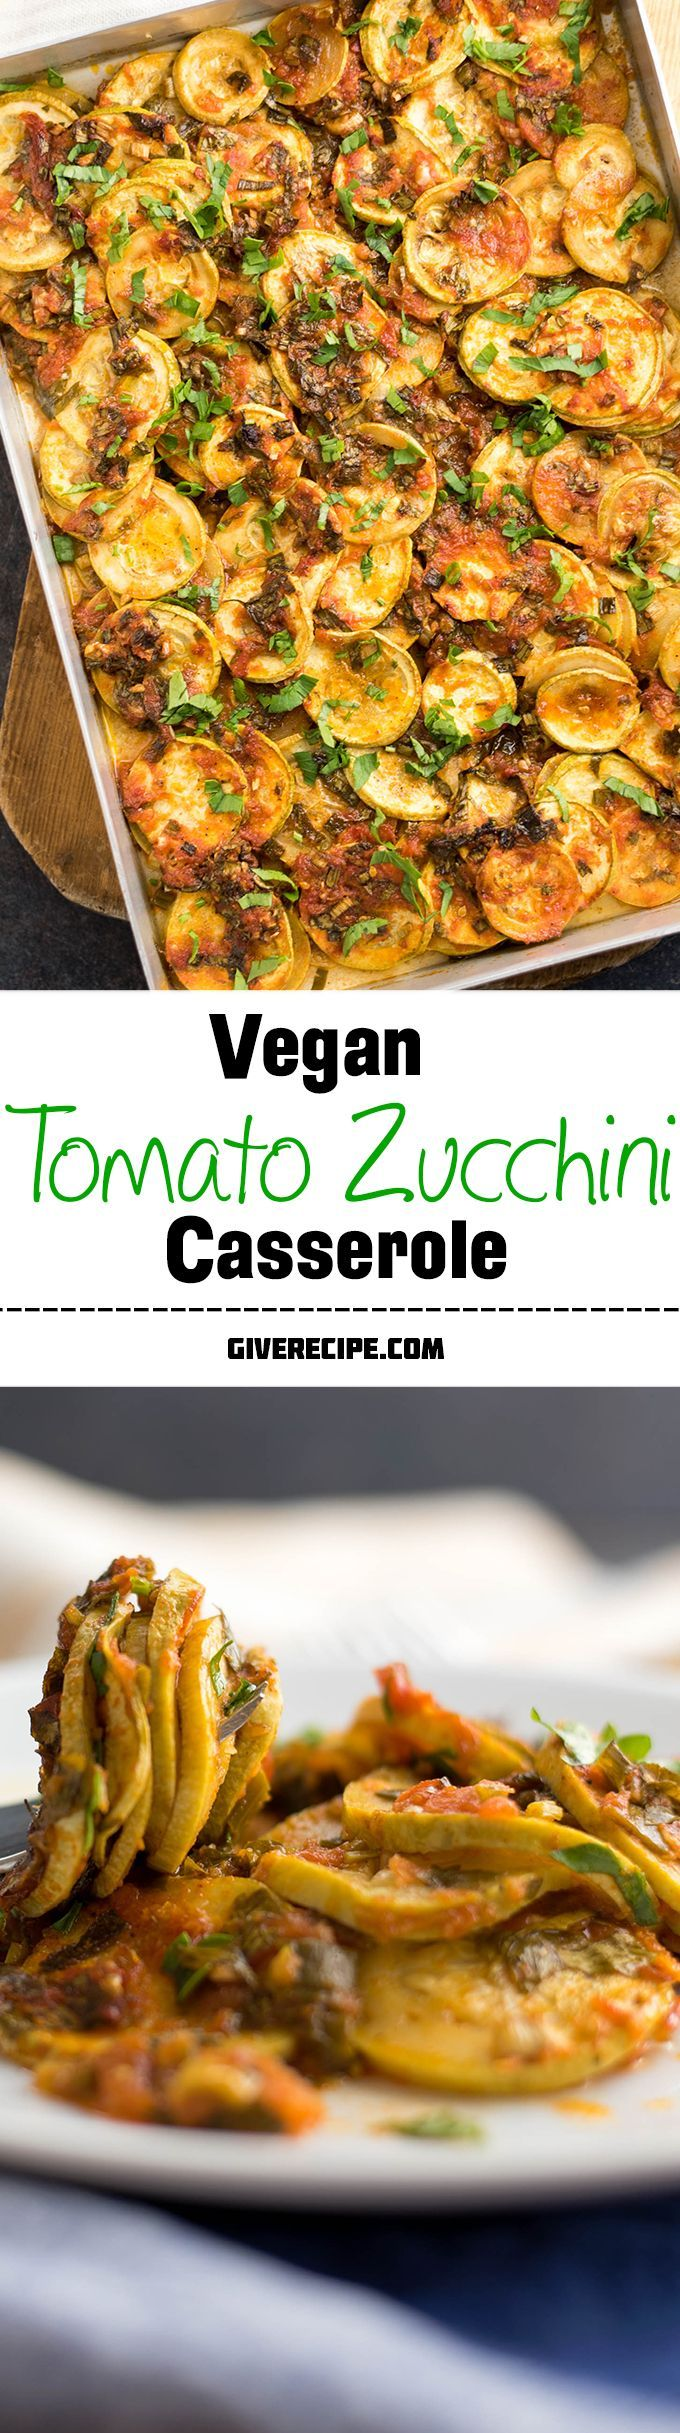 You will never see leftovers when you make this zucchini casserole. This is the BEST vegan casserole ever thanks to tangy and garlicky tomato sauce in it. | giverecipe.com